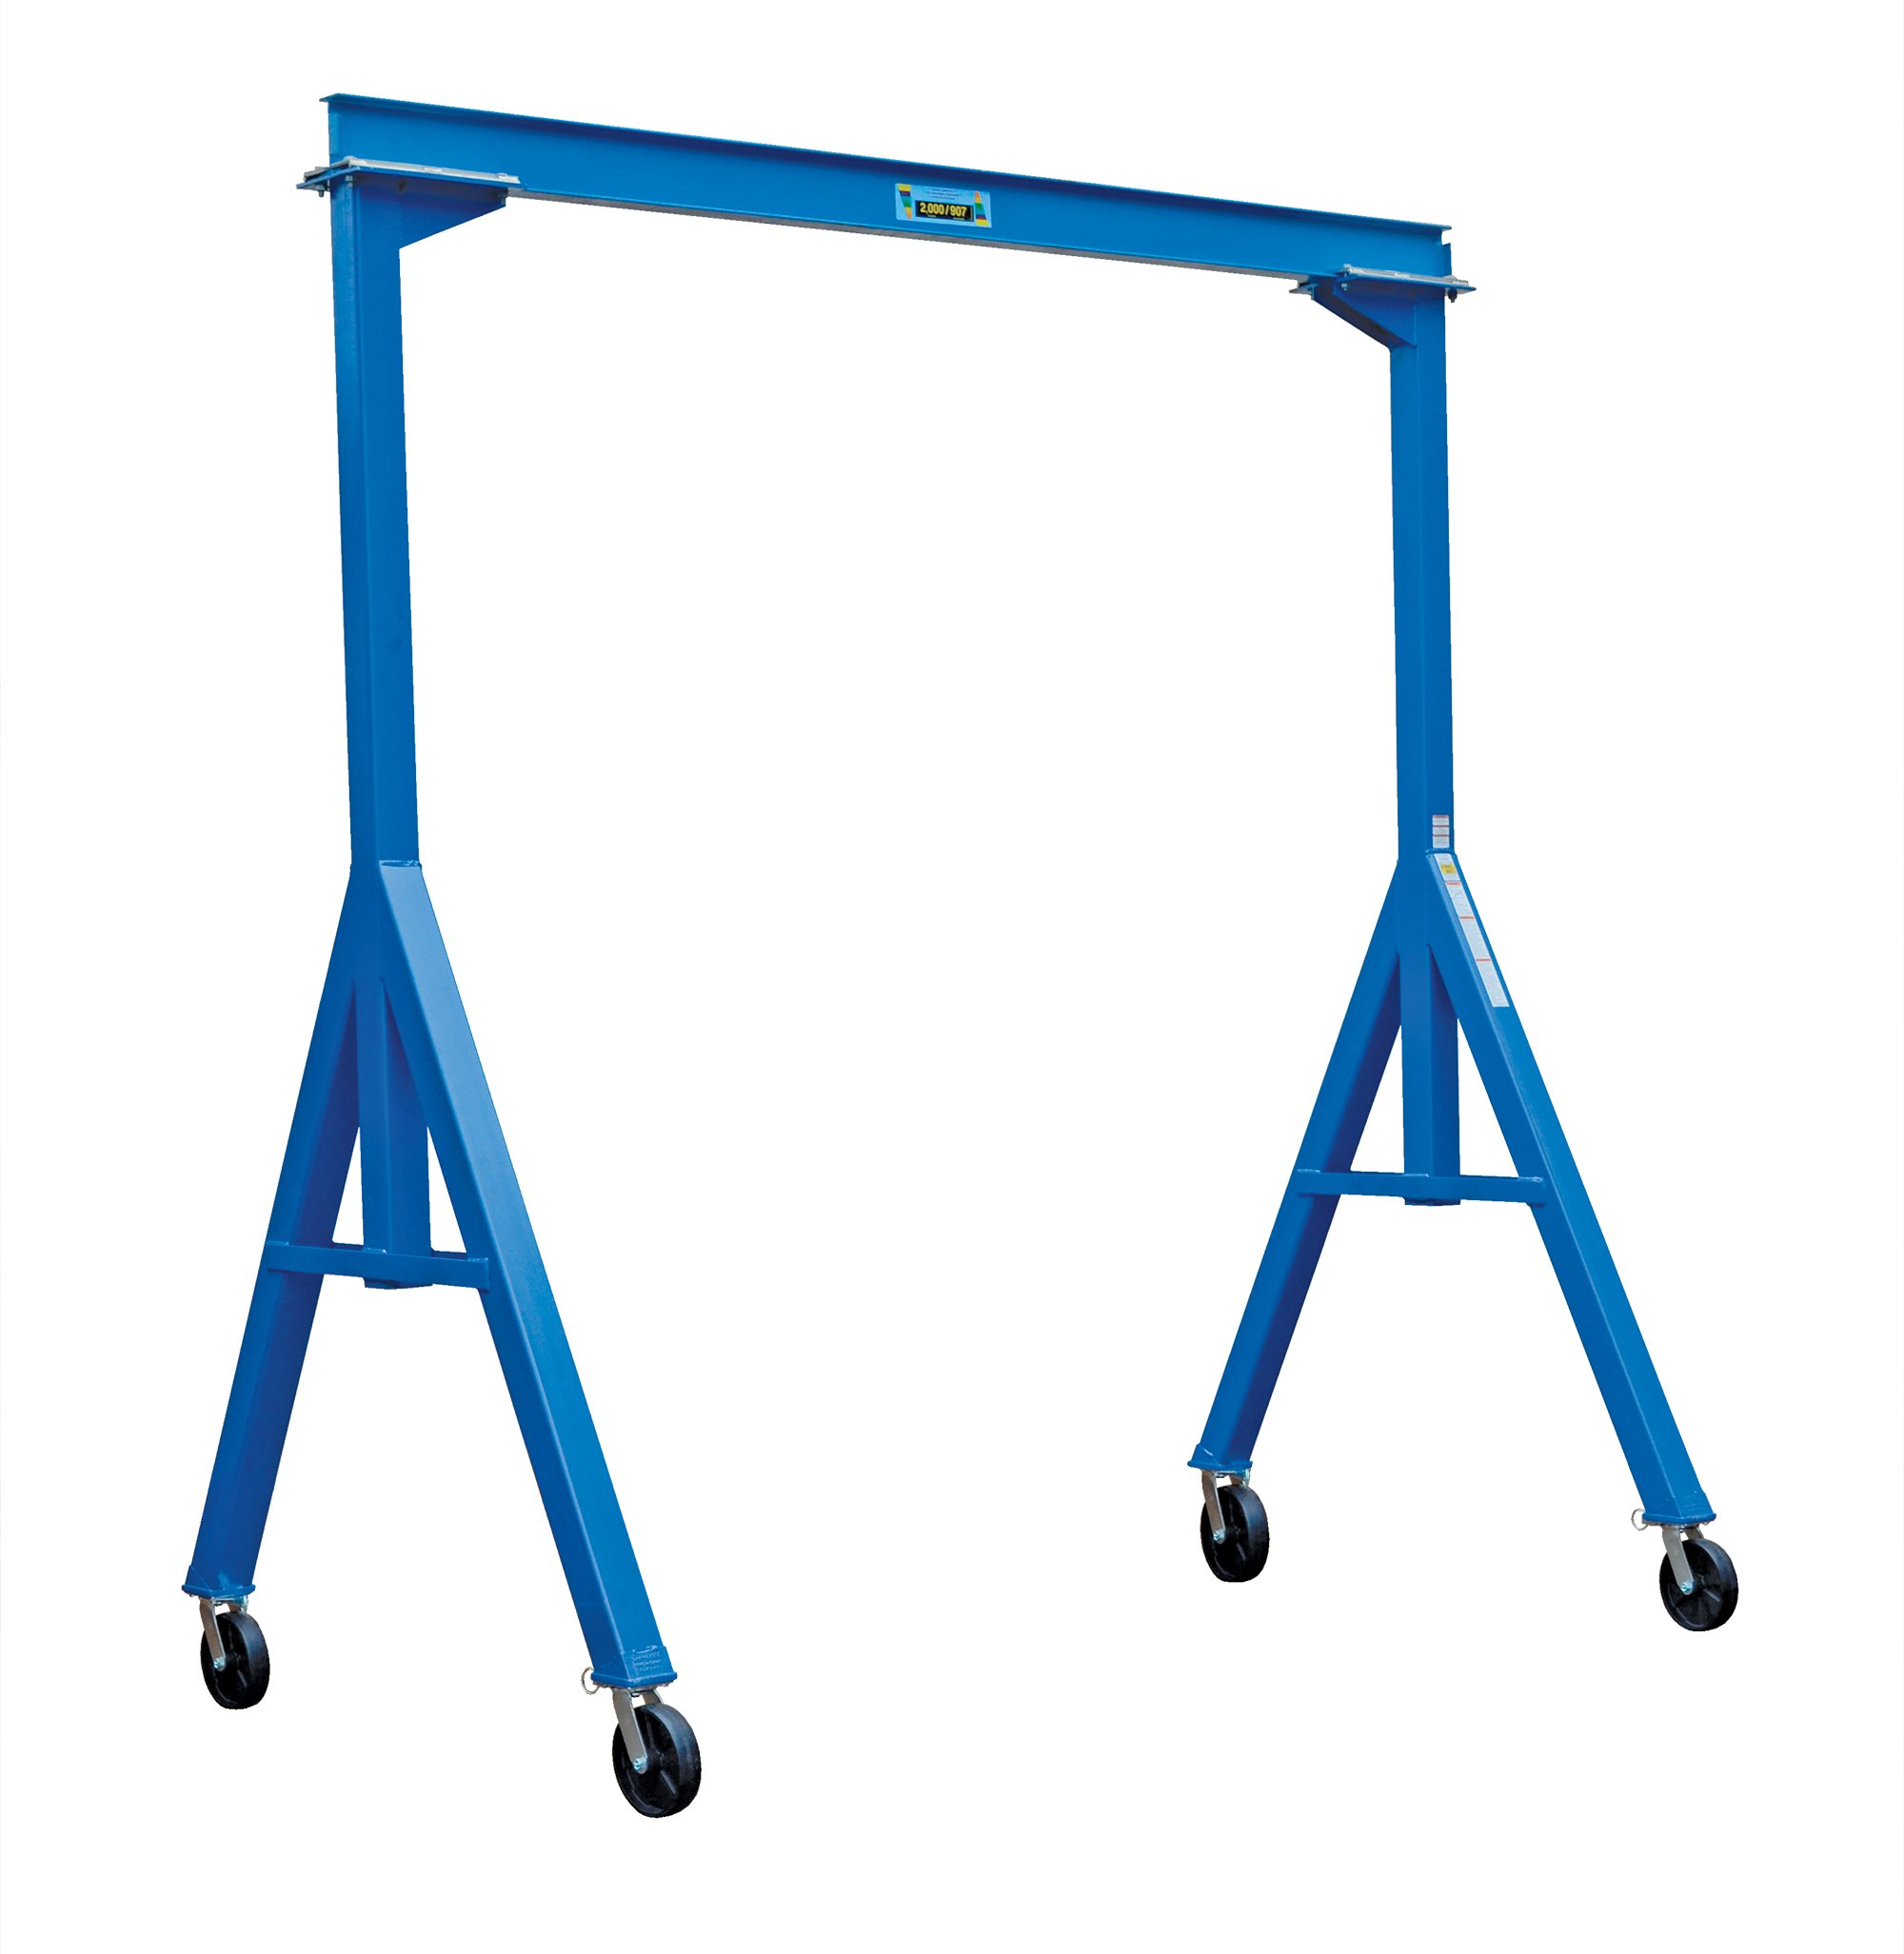 Vestil FHS-2-10 Fixed Height Steel Gantry Crane, 2000 lbs Capacity, 10' Length x 6'' Height Beam